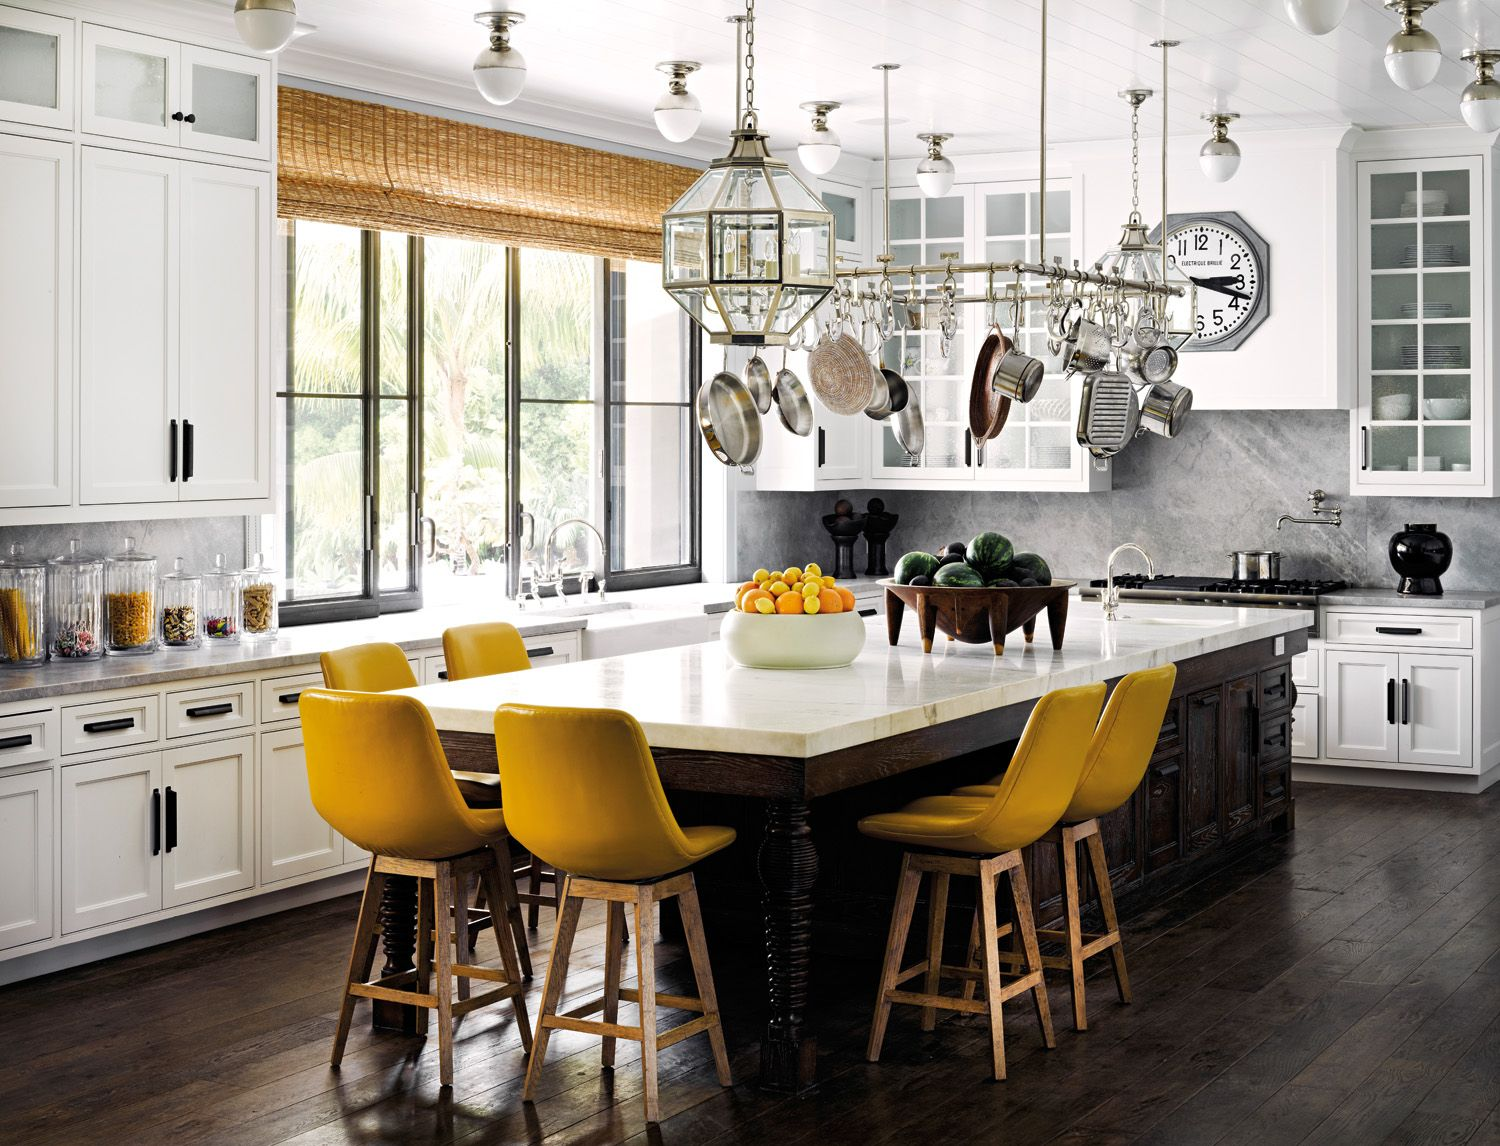 6 Chic Ways To Create A Kitchen For Entertaining